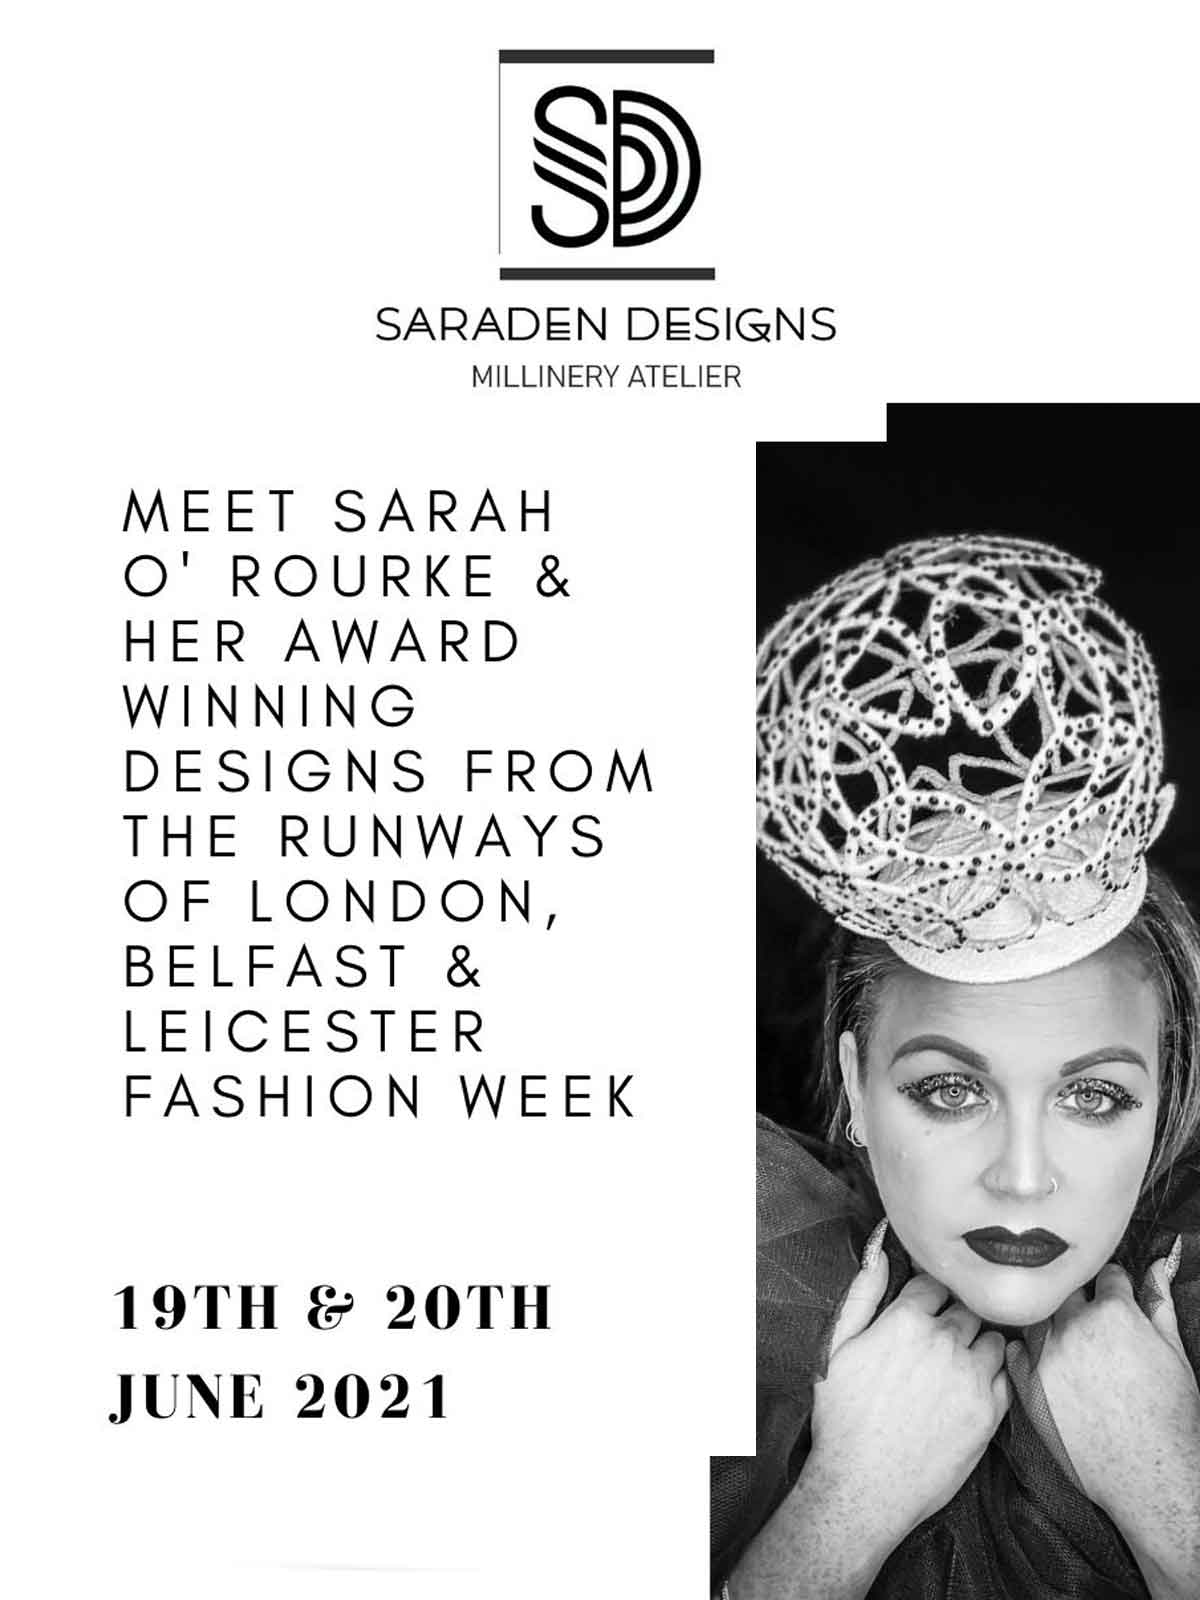 The Dublin Maker 2021   Visit Saraden Designs stand M31 in Zone 5 in Gather town